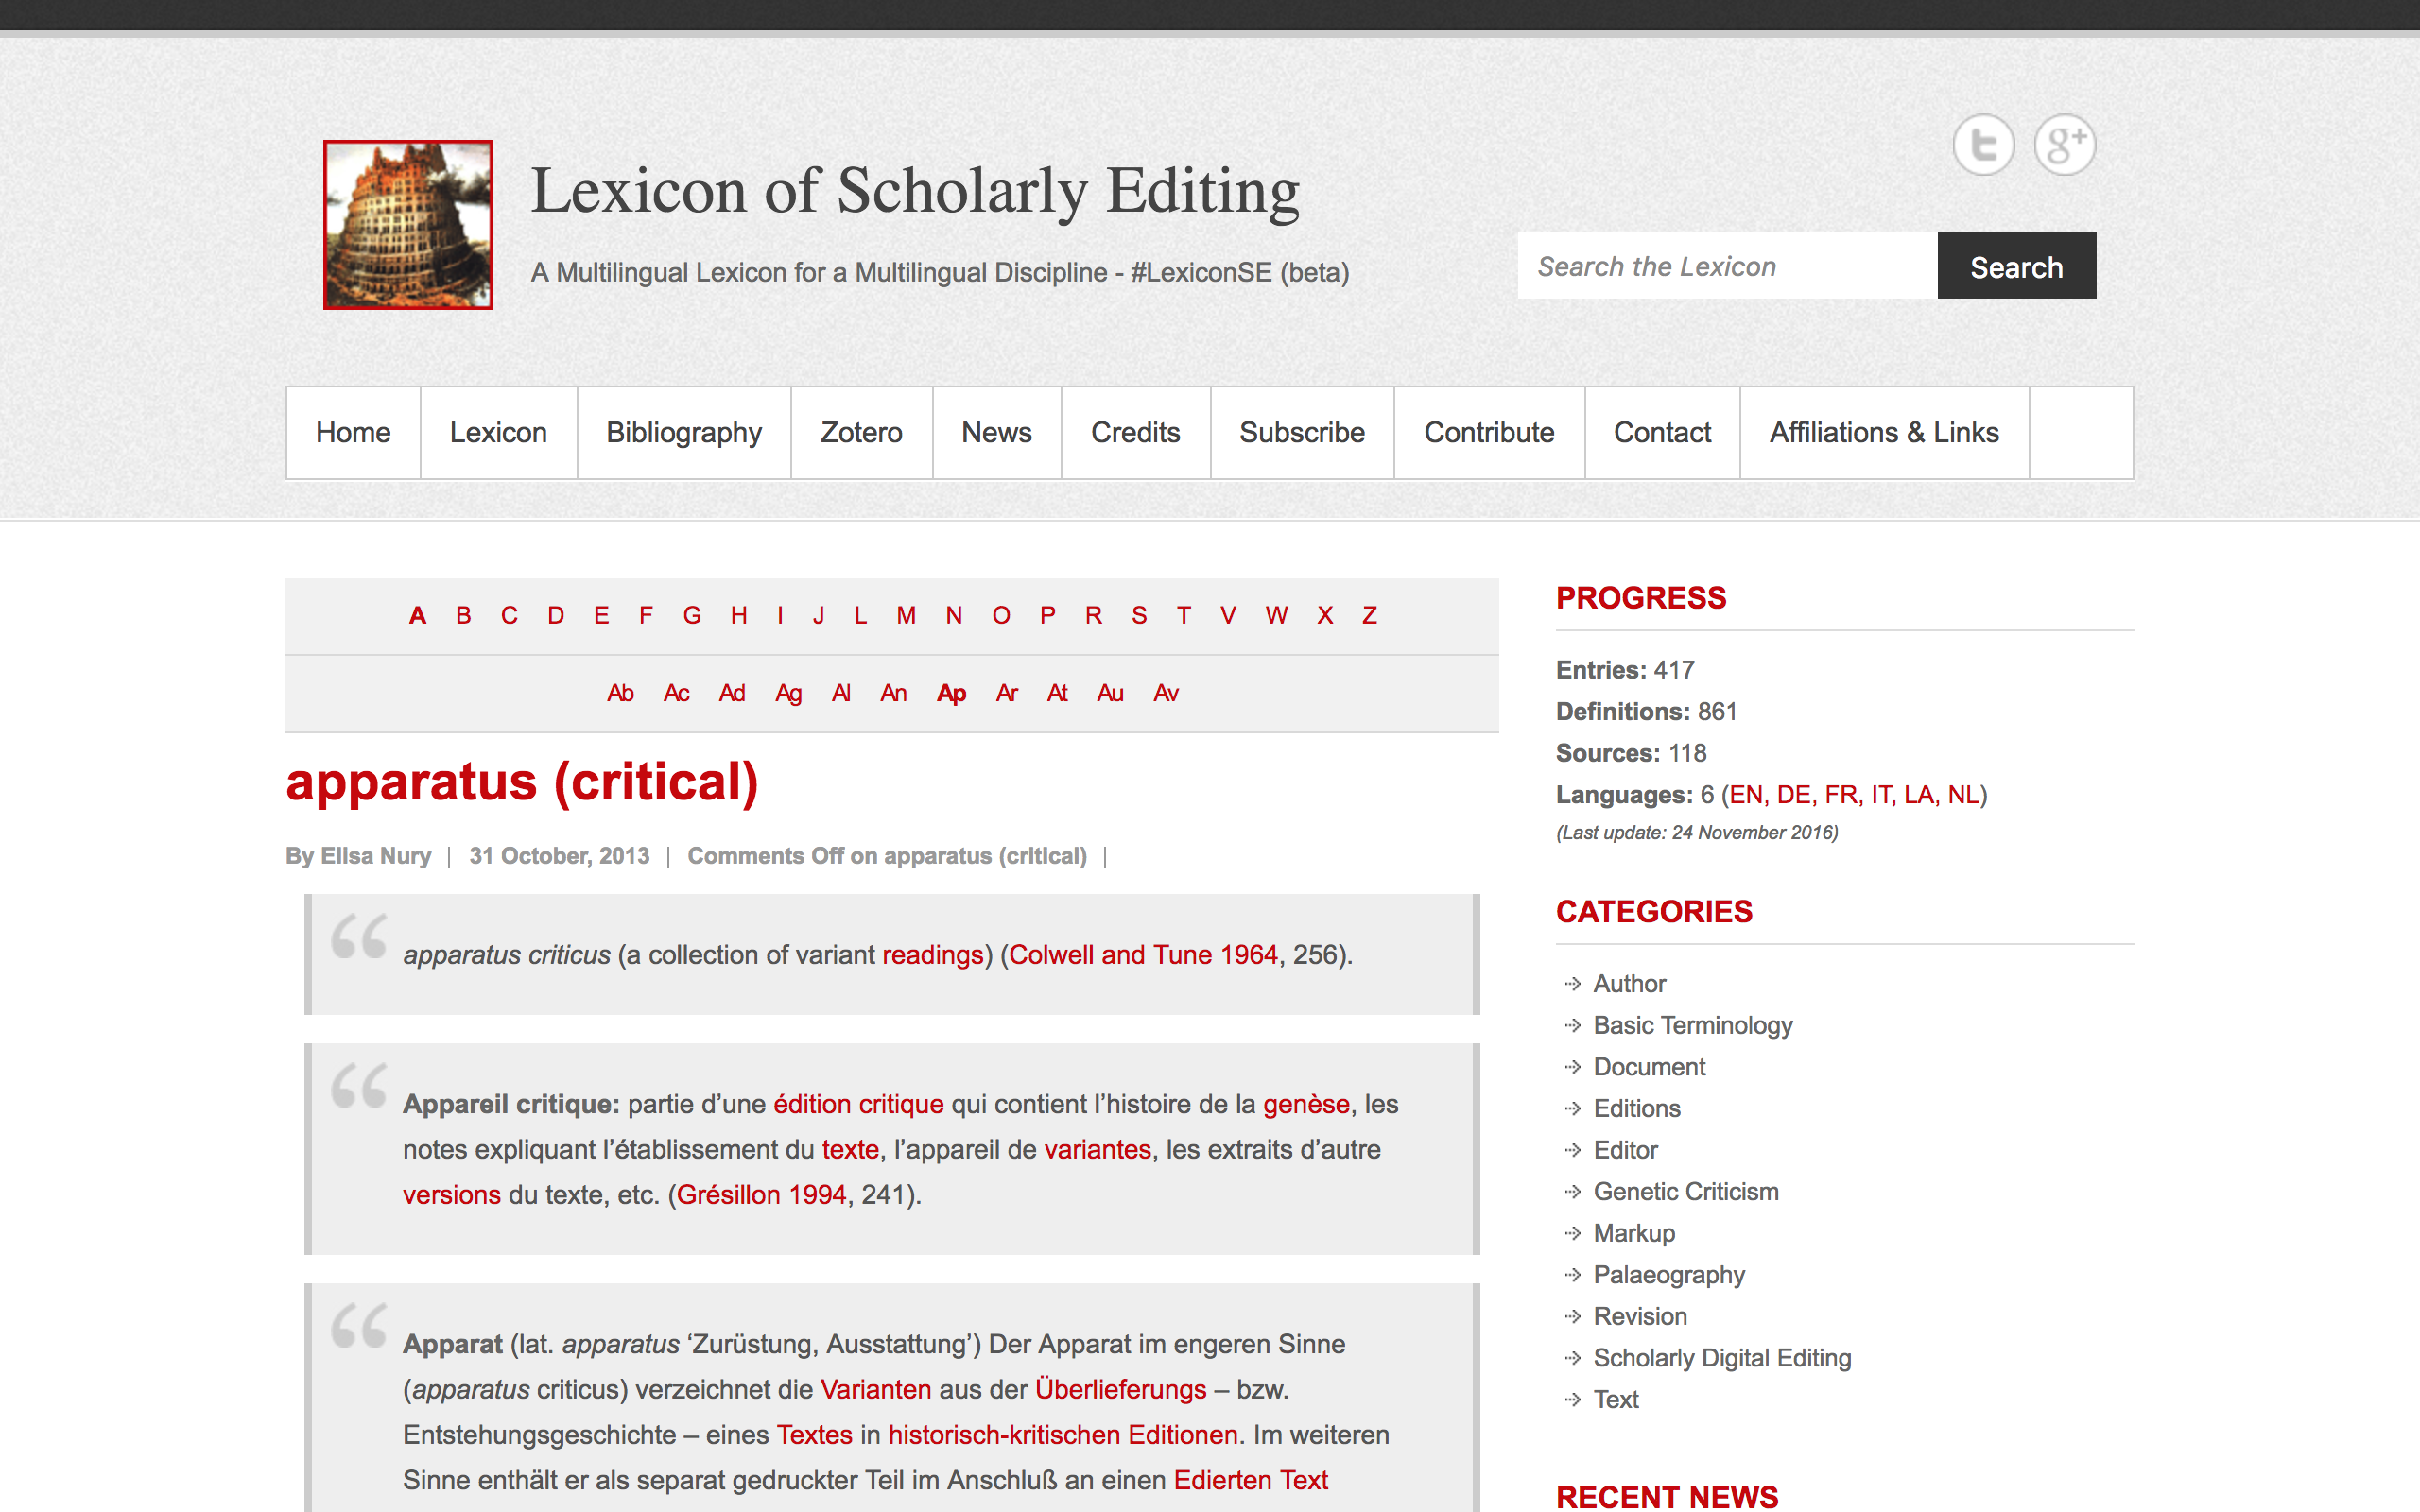 Lexicon of Scholarly Editing